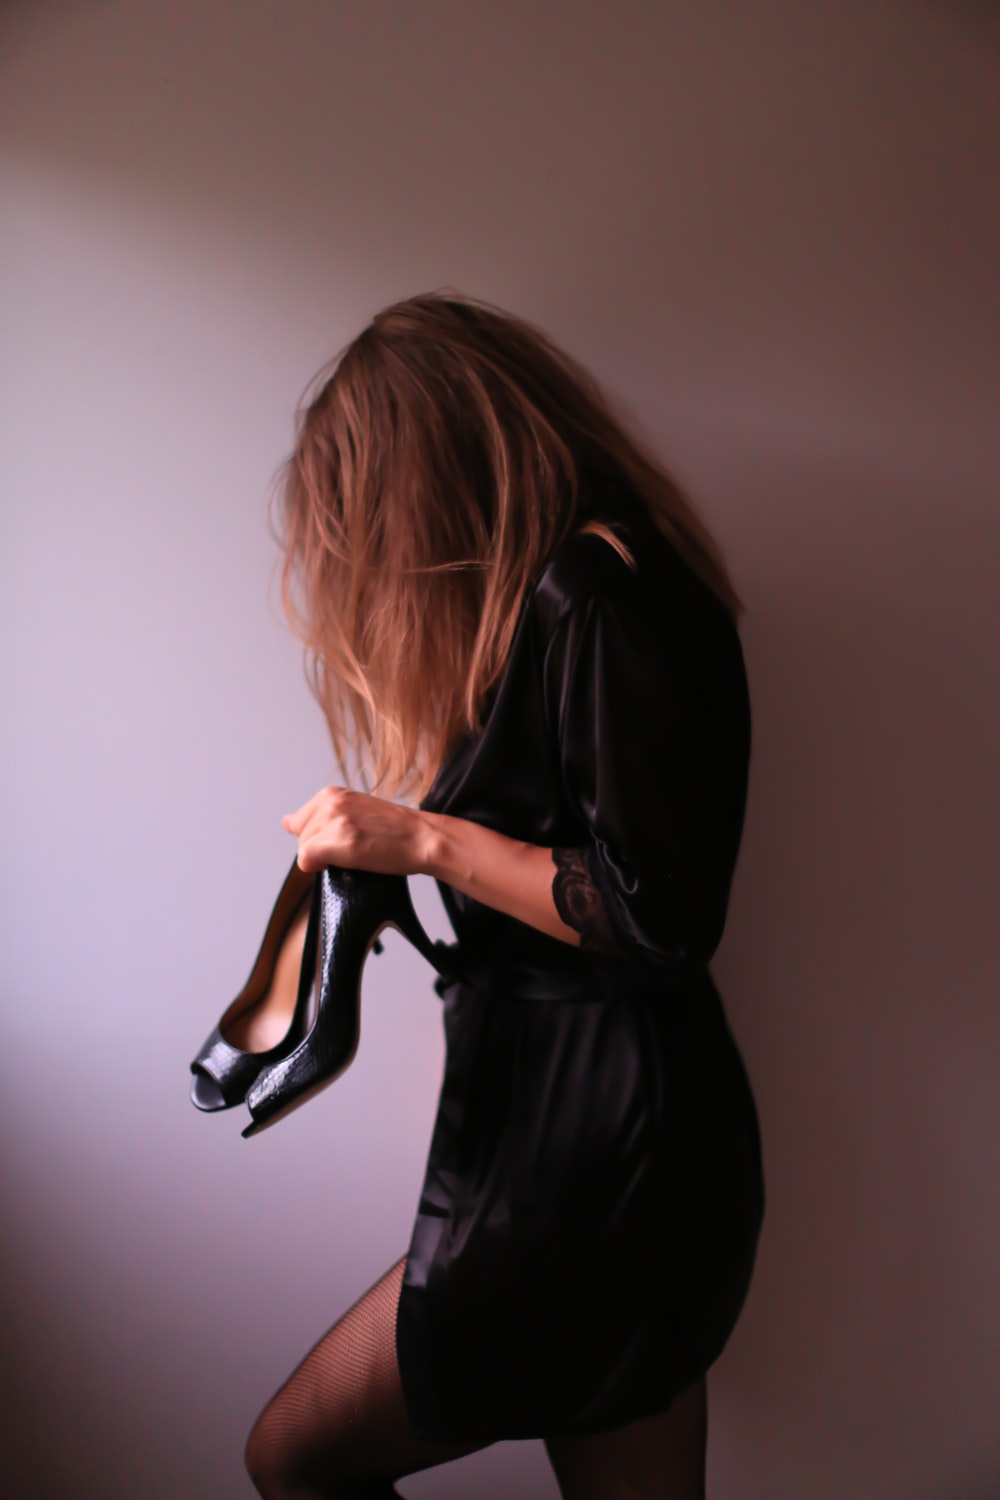 woman in black dress standing by the wall holding shoes